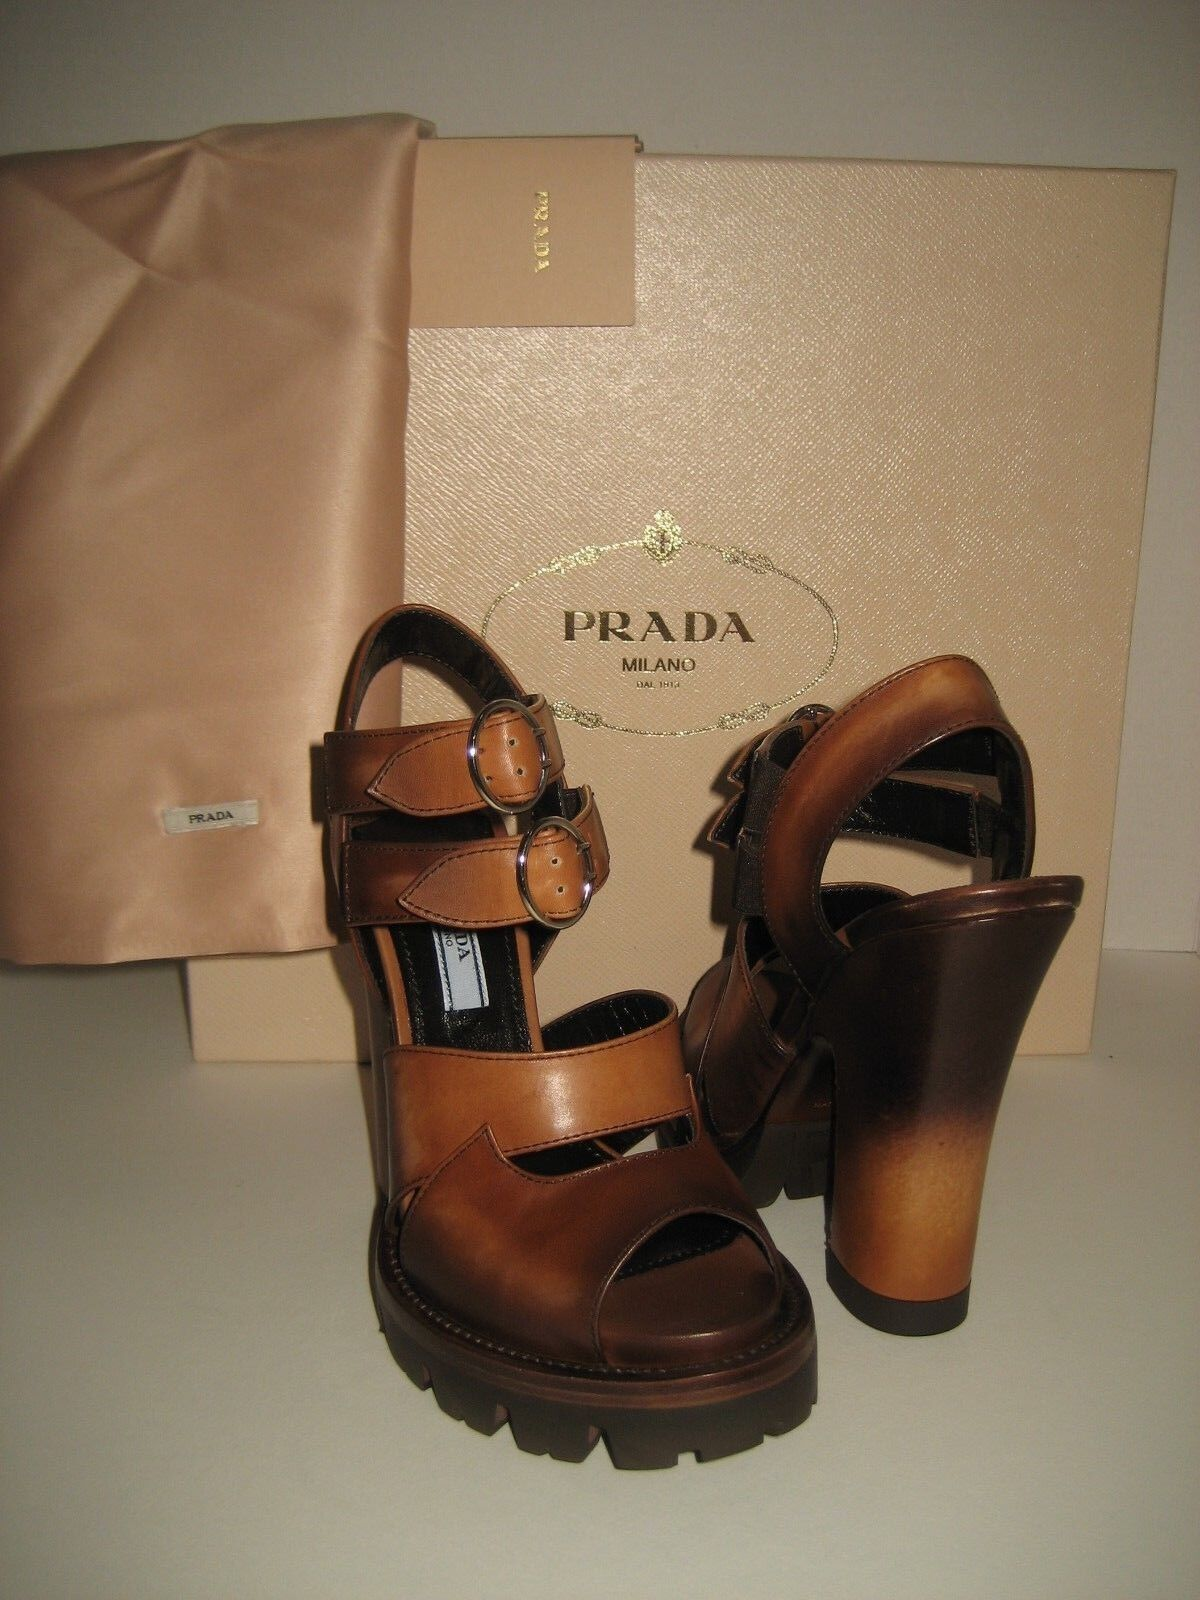 700 NEW PRADA Women US 5 Brown Leather Ankle Strap High Heel Sandals shoes Box bac507